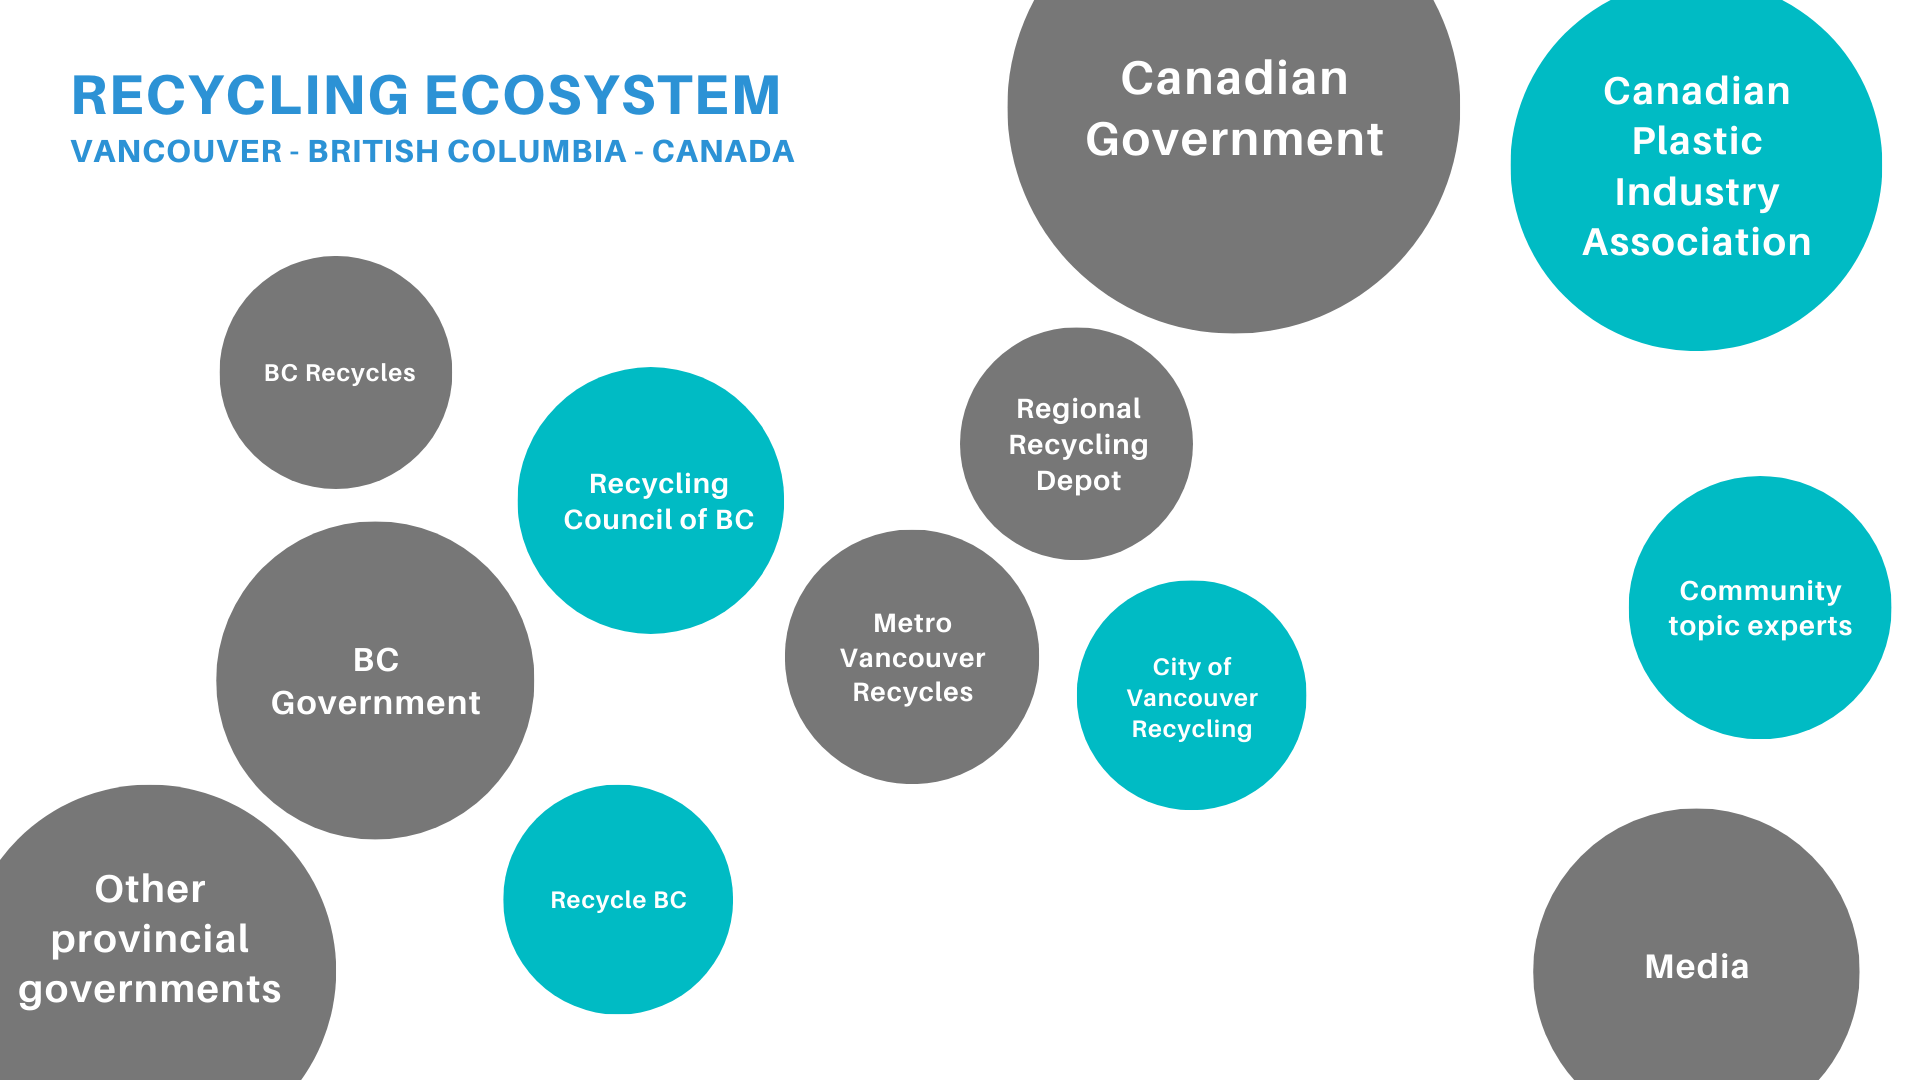 Recycling ecosystem map composed of different actors represented by circles.